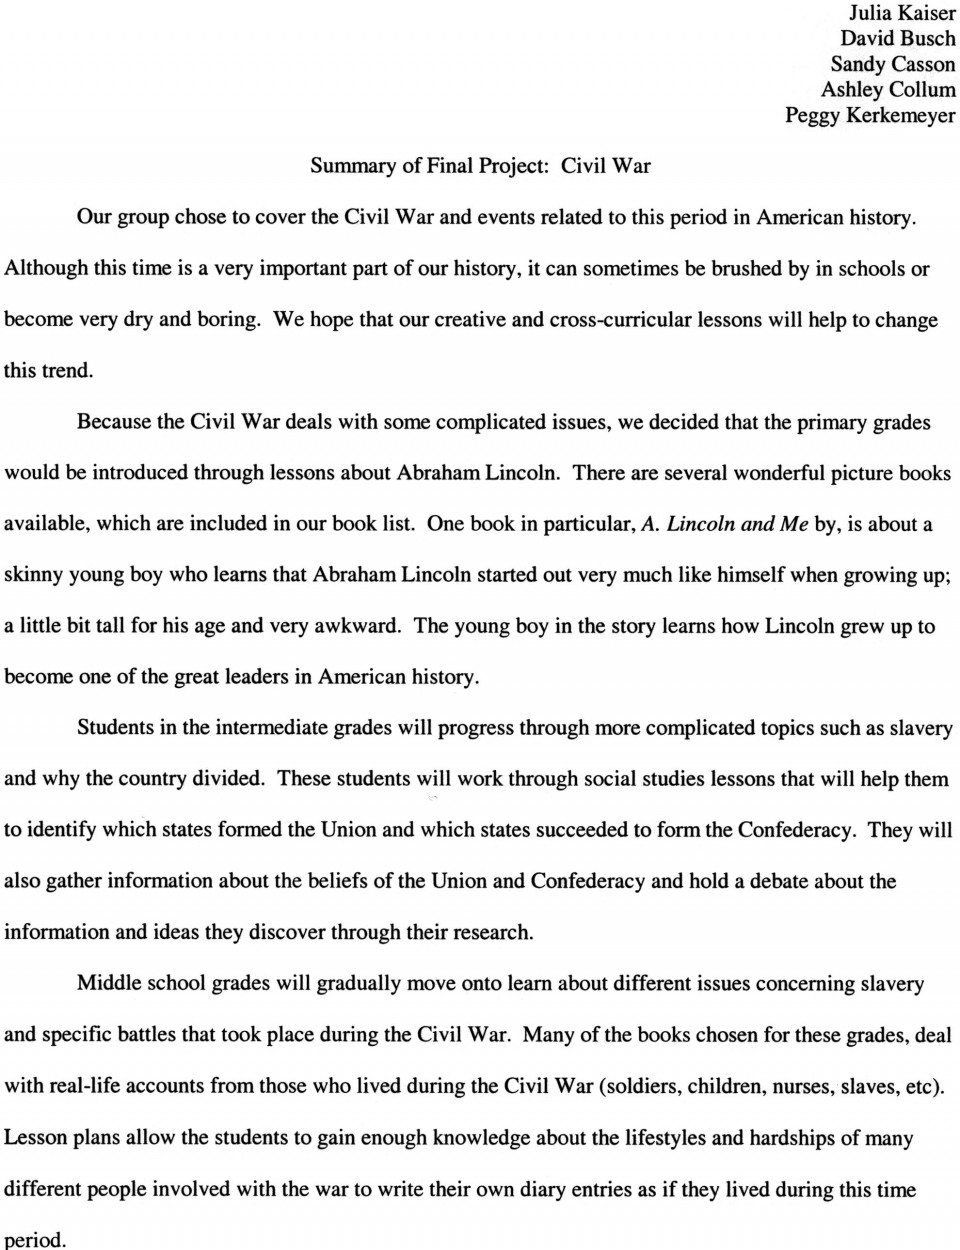 008 Academic Research Paper Essays Civil War Essay Hooks Surprising 960